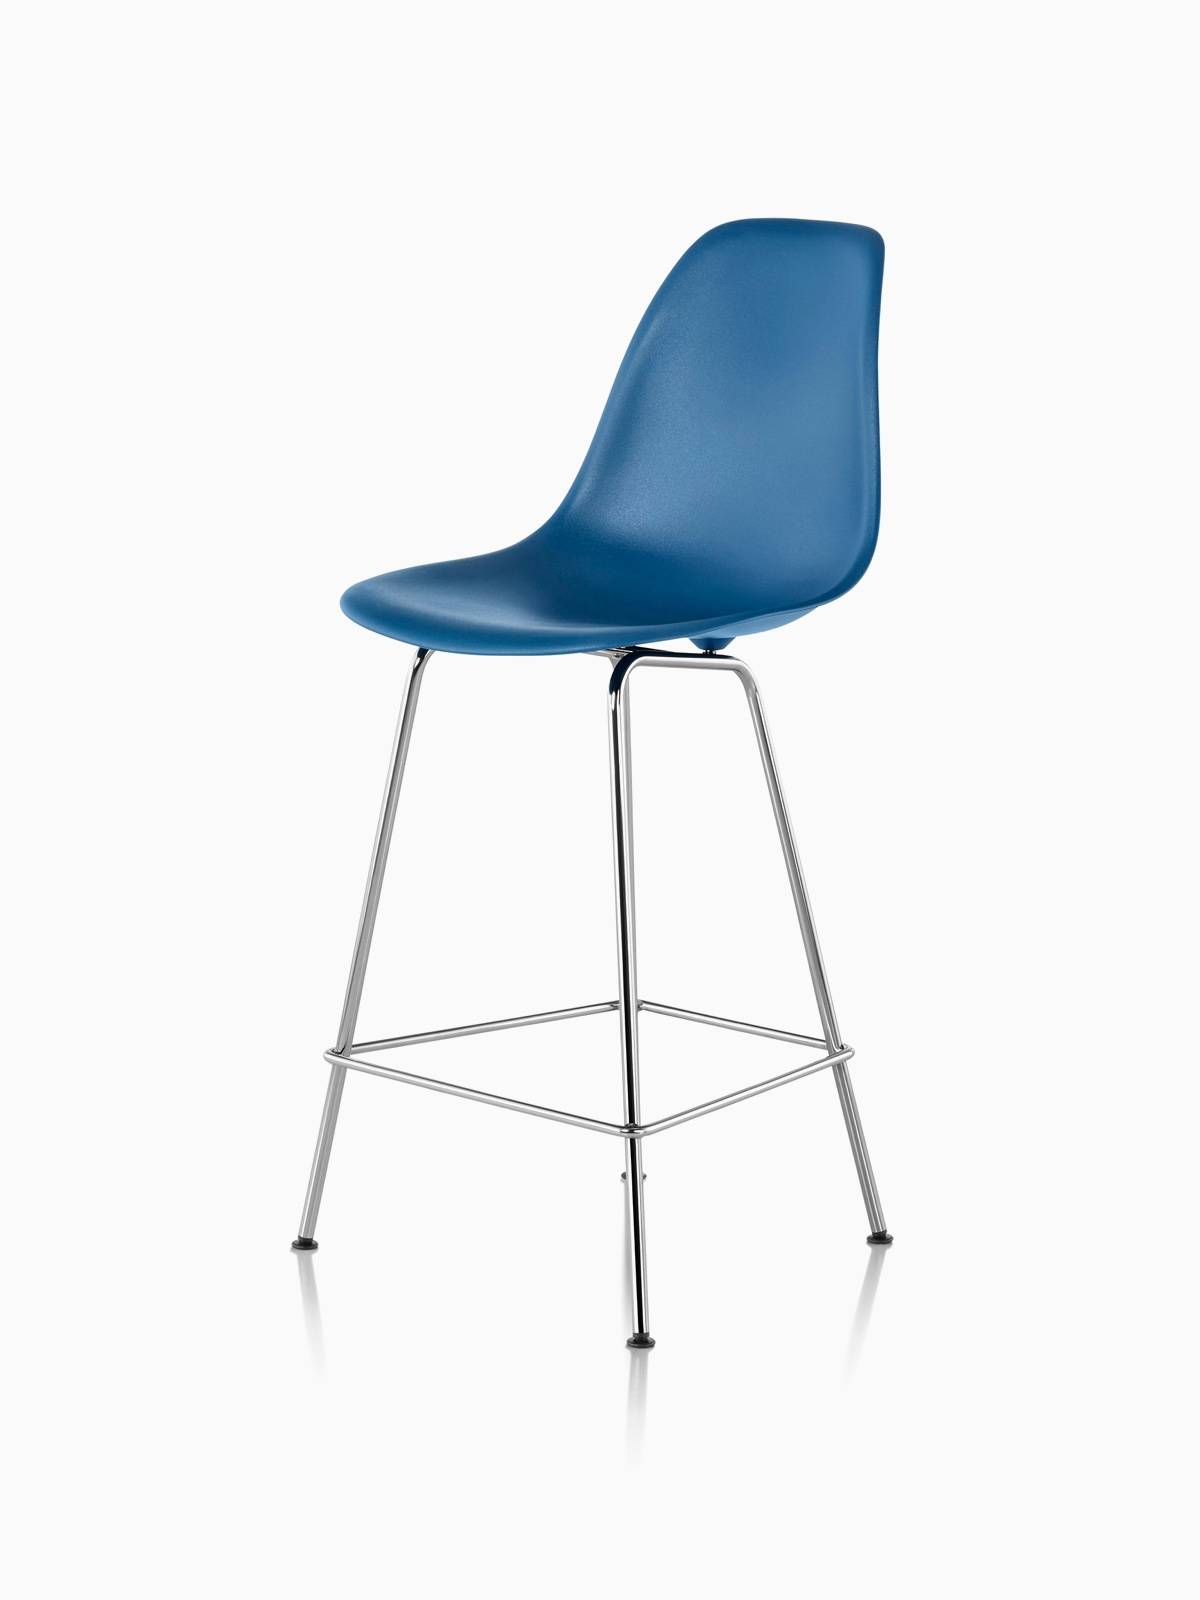 Blue Eames Molded Plastic Stool with Metal Legs